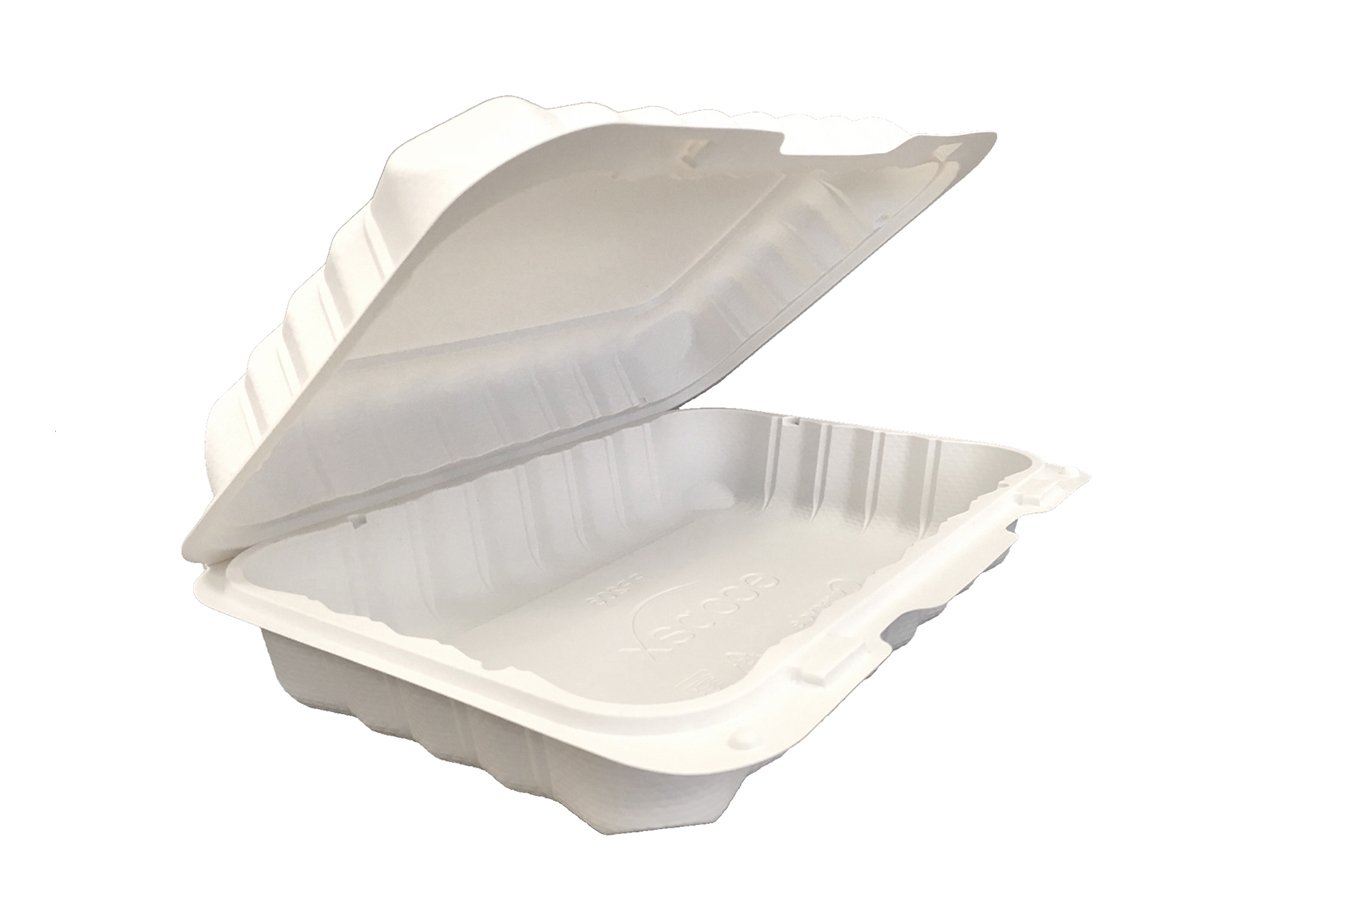 Ivory Polypropylene PP Plastic Pebble Box hinged container